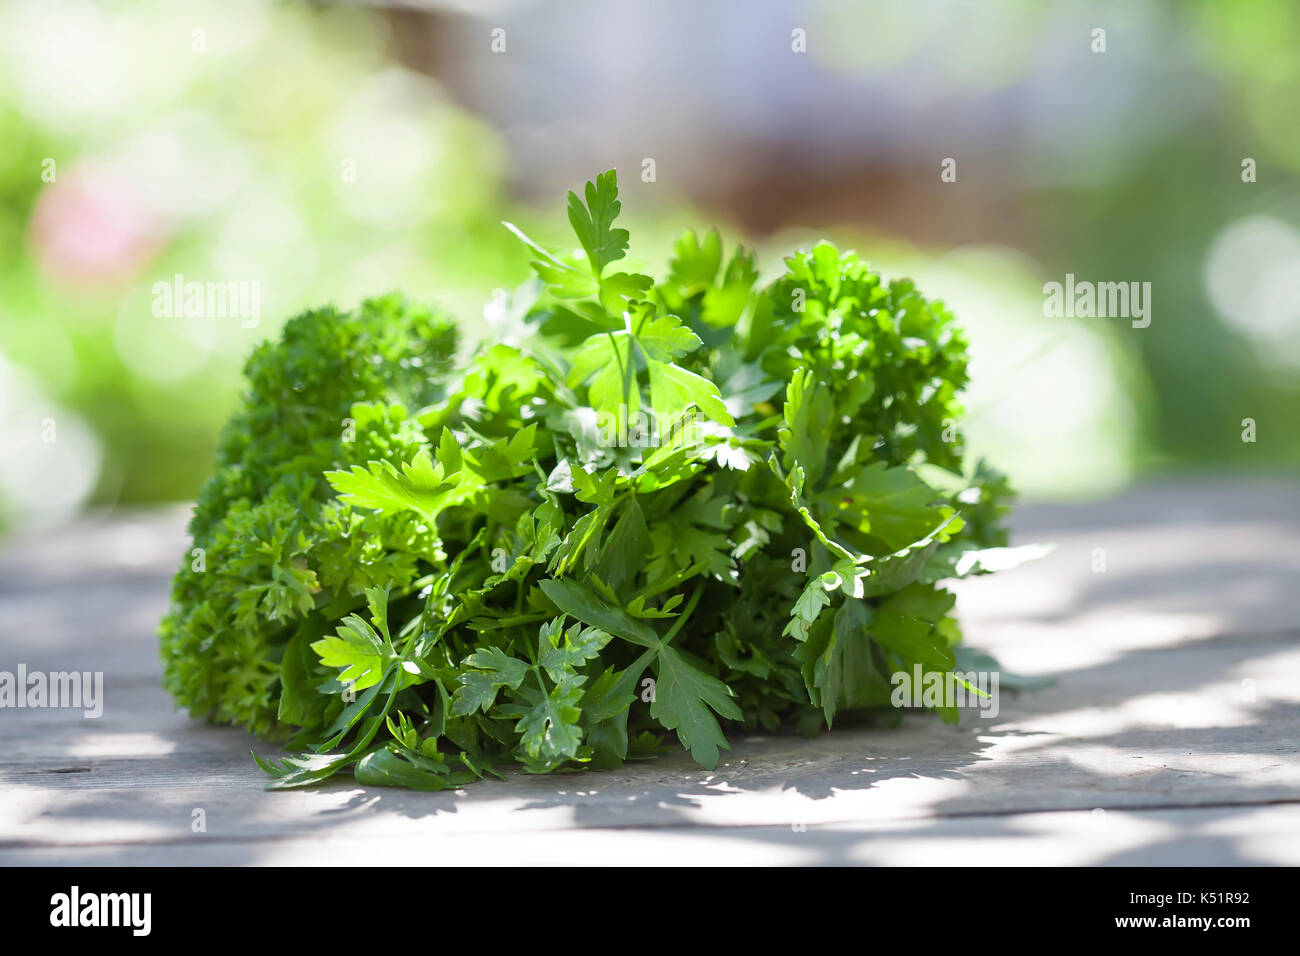 Parsley on wooden table. Farmers summer harvest still life. Selective focus, beautiful bokeh. - Stock Image